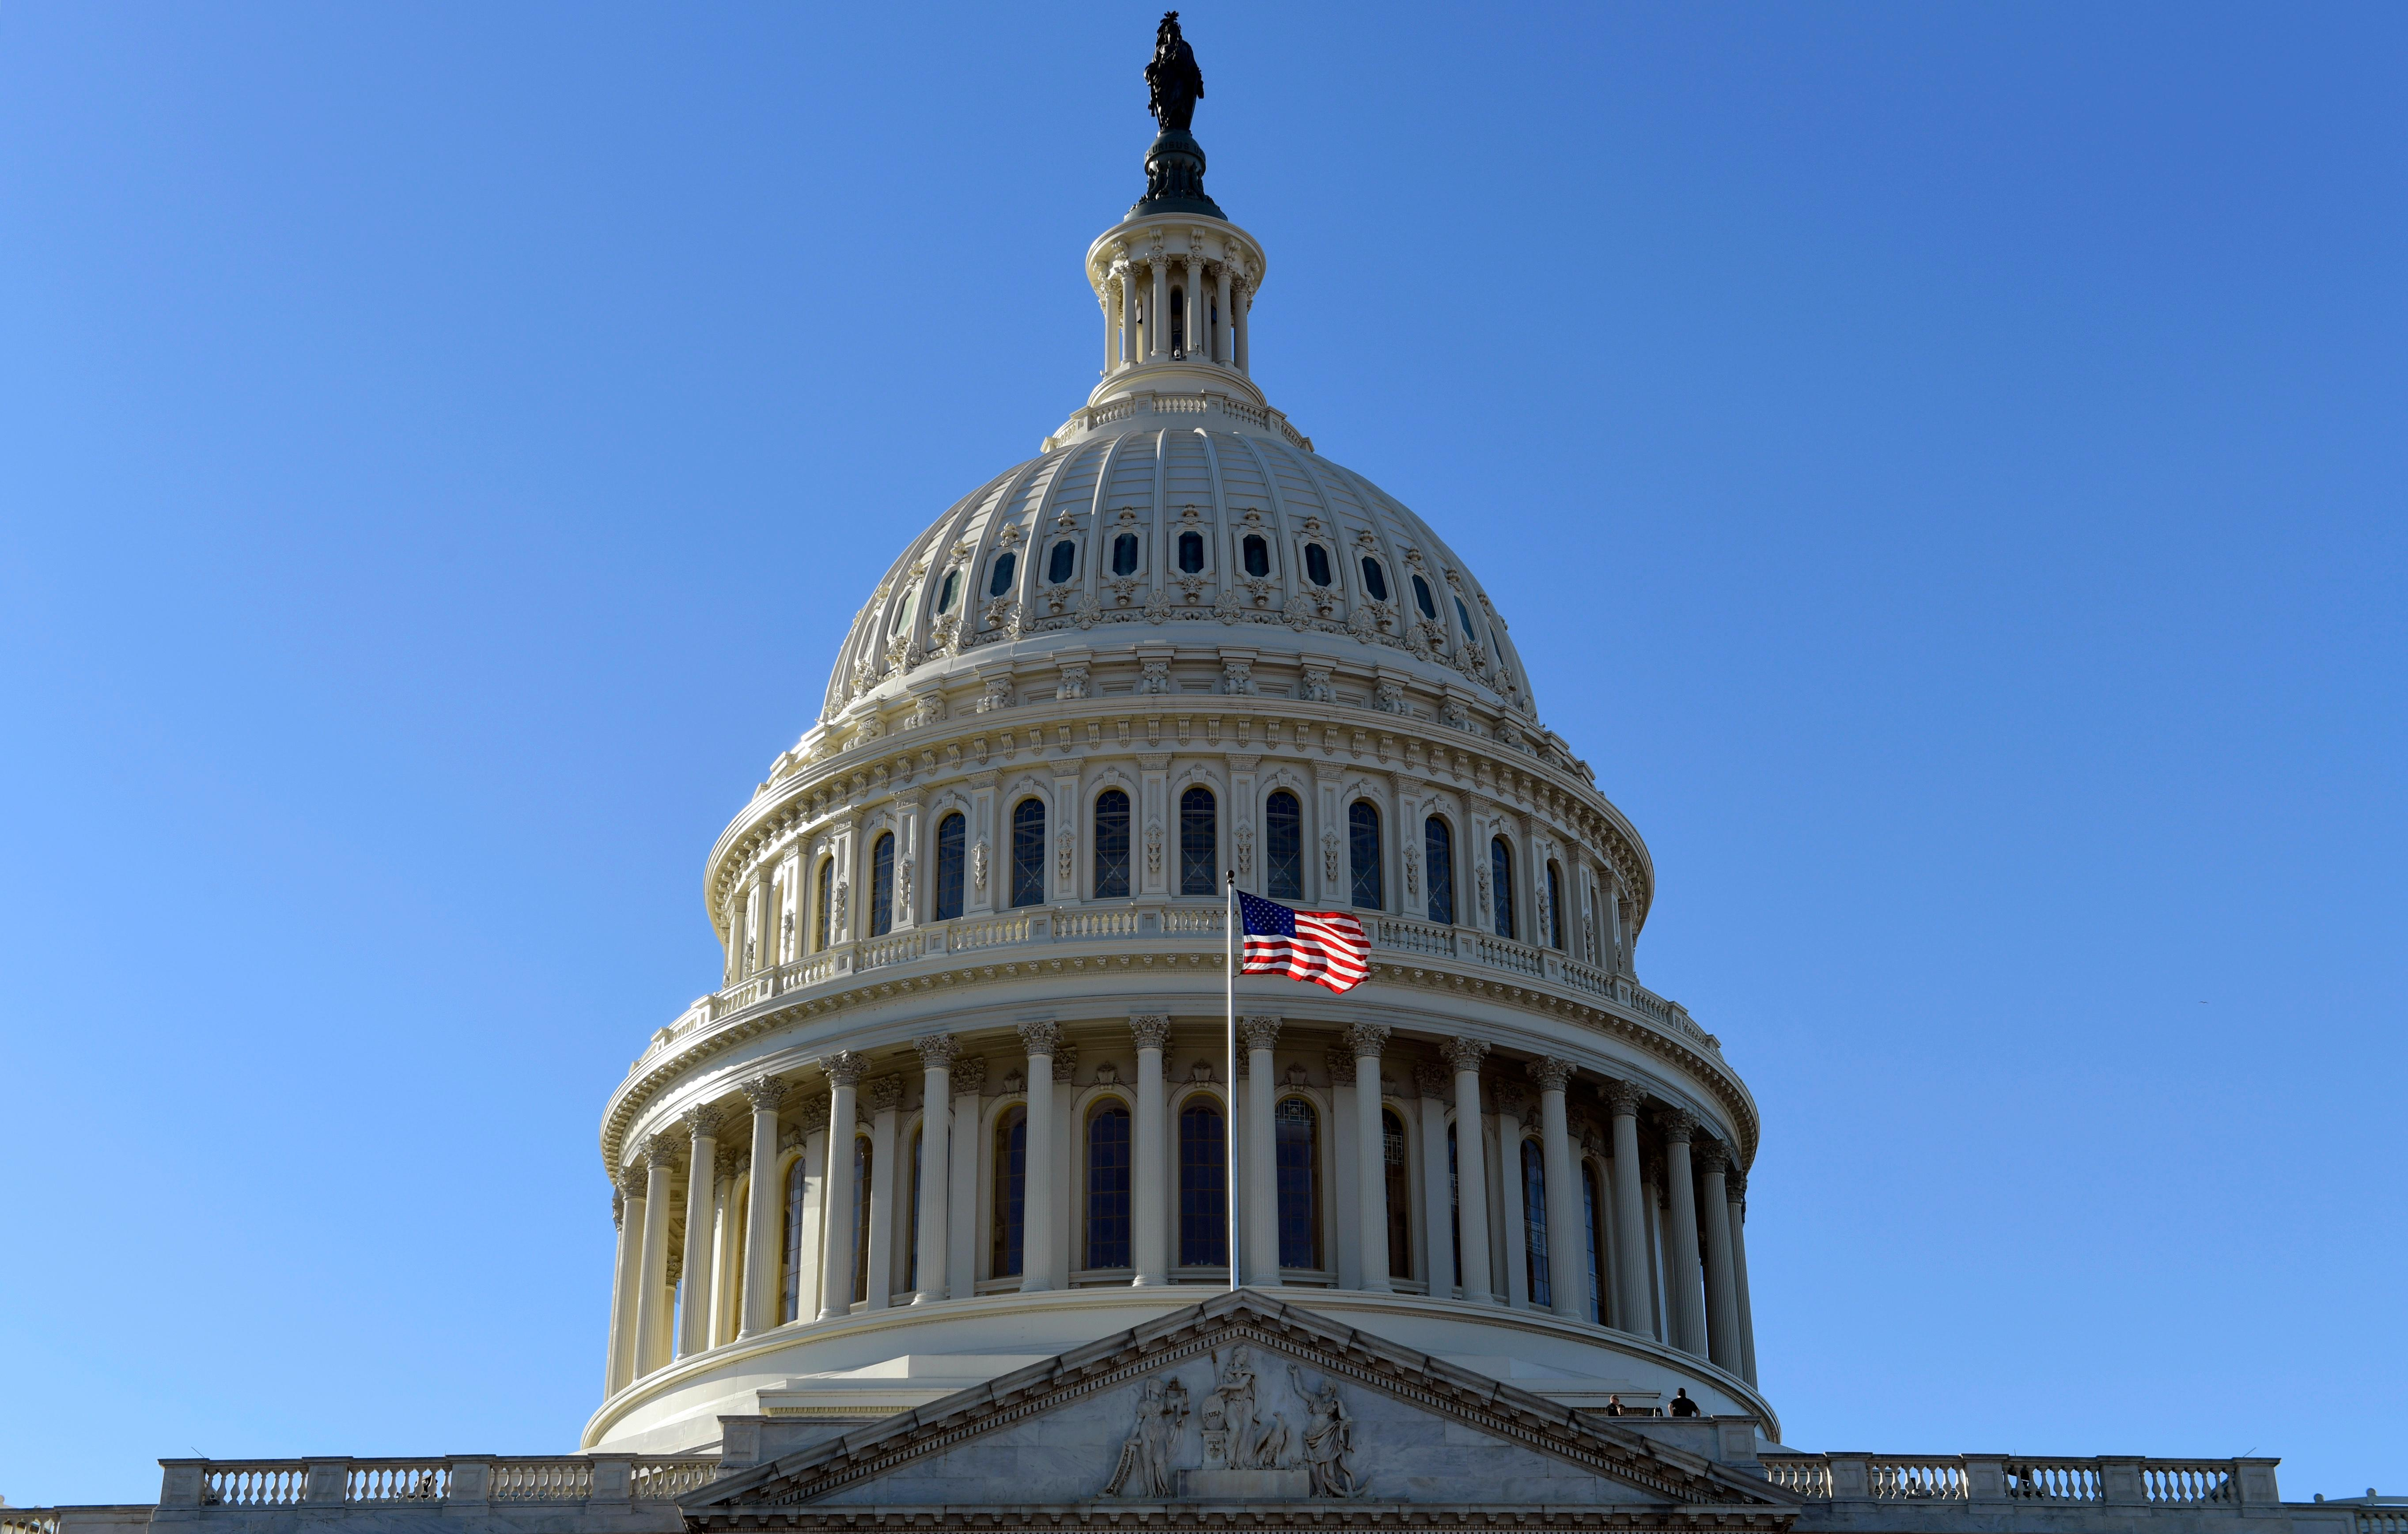 A flag flies on at the U.S. Capitol in Washington, Tuesday, Nov. 28, 2017. The House is scheduled to vote on adopting mandatory anti-sexual harassment training for all members and their staff. (AP Photo/Susan Walsh)